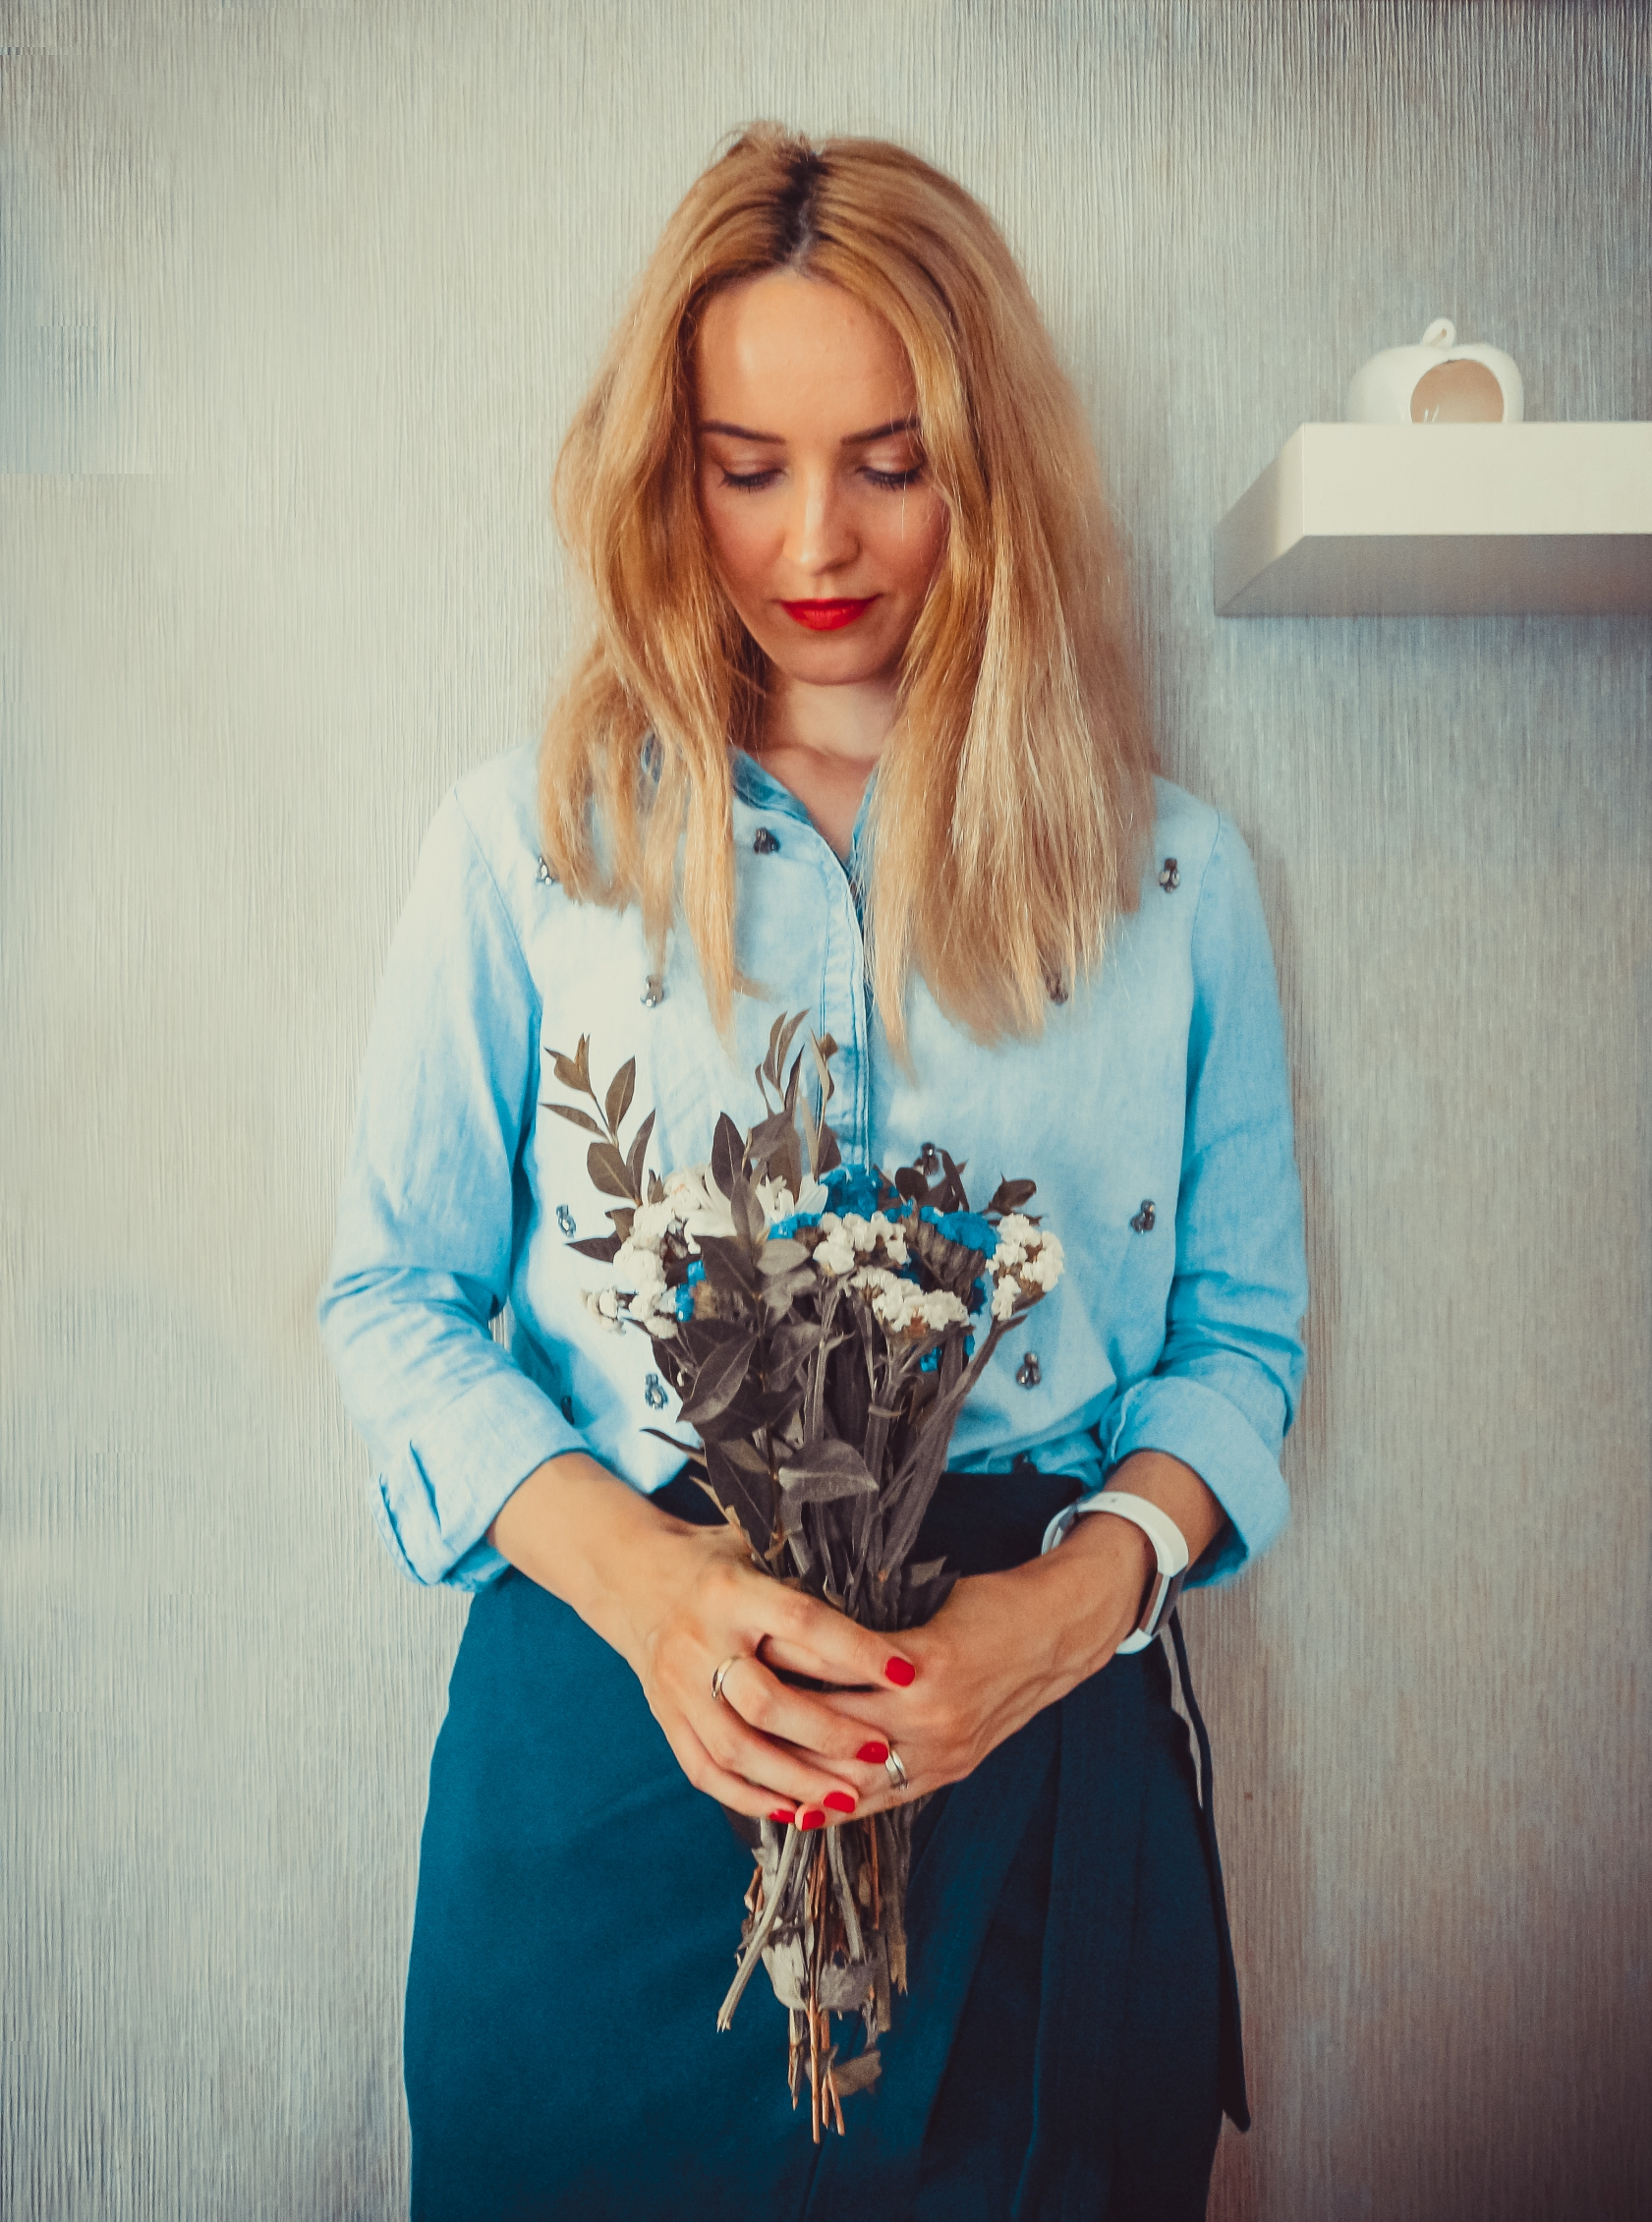 girl with flowers bouquet